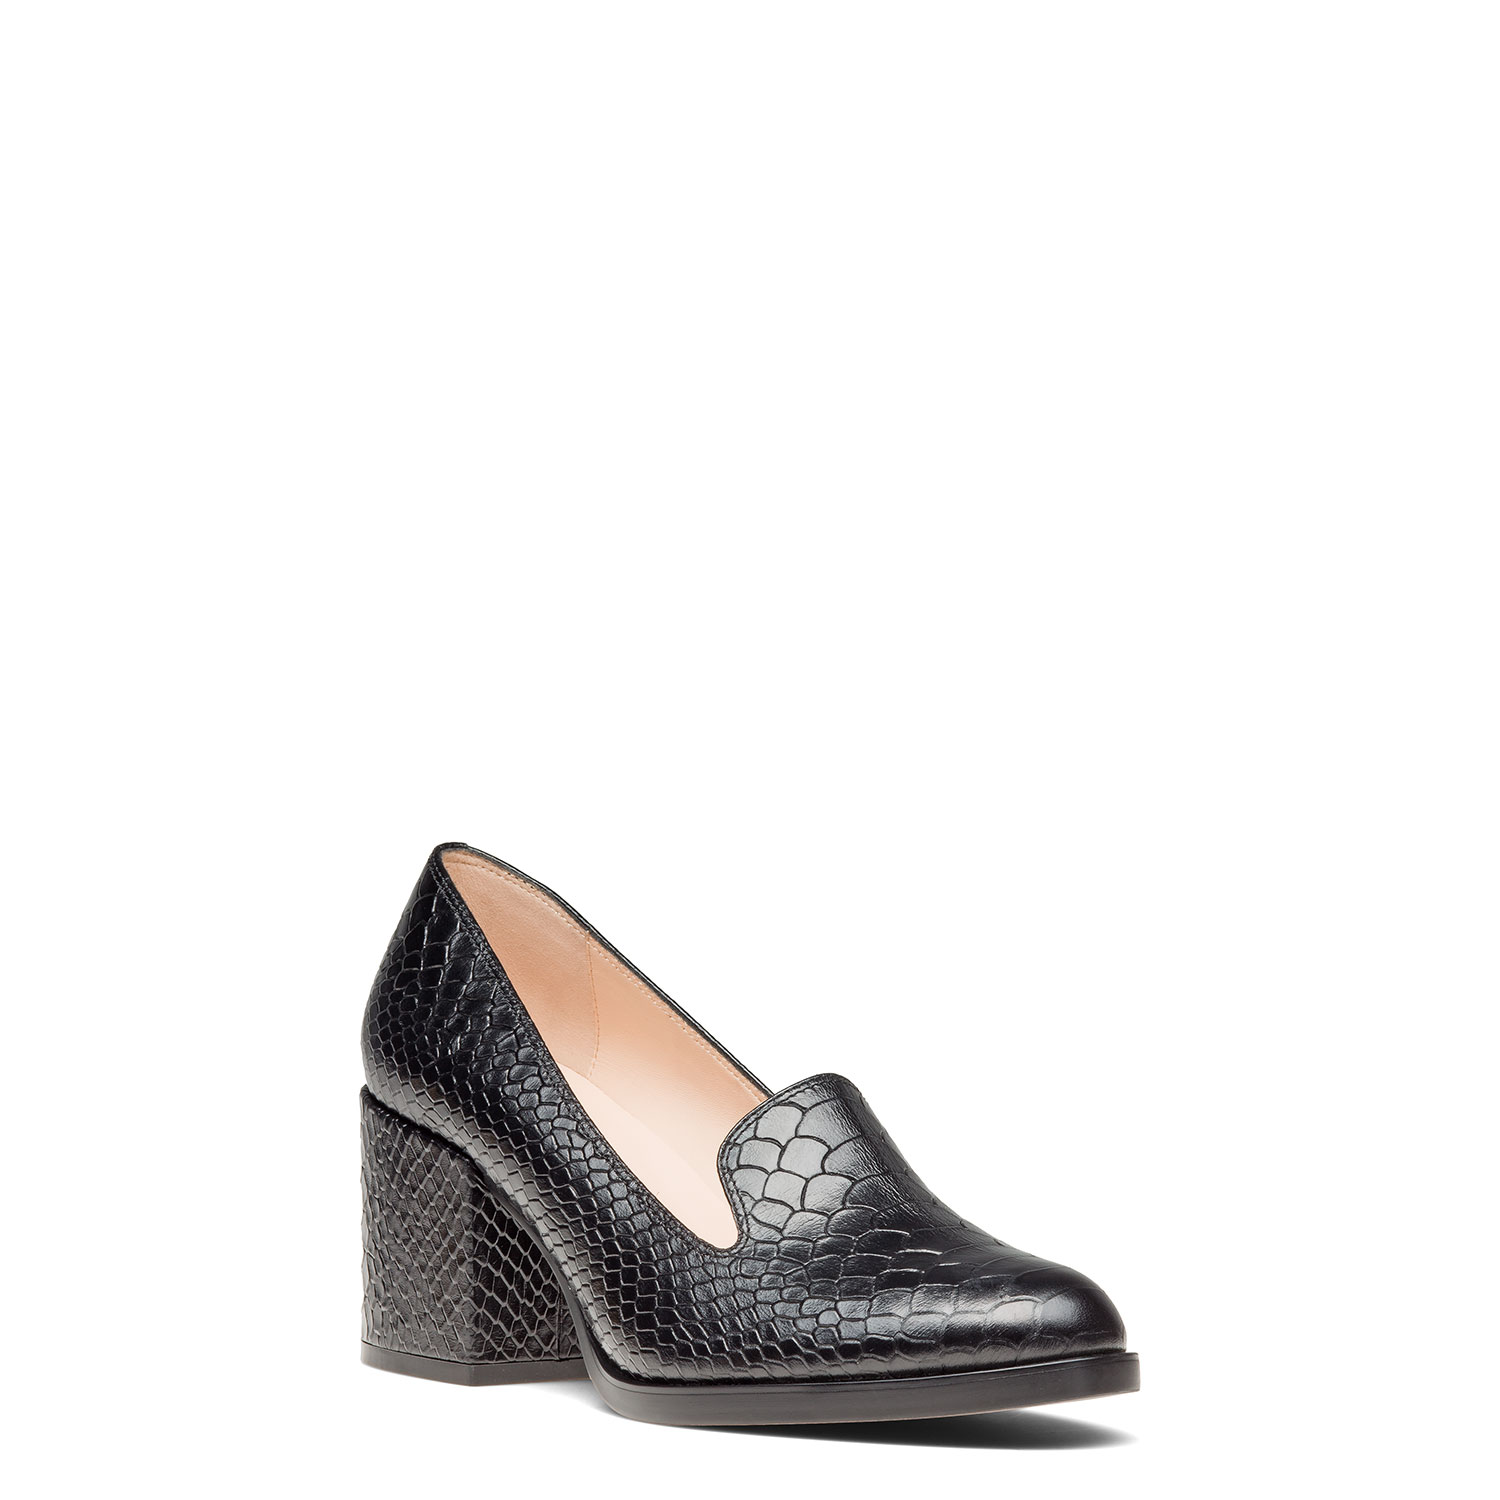 Women's shoes CARLO PAZOLINI FL-GRW1-1K